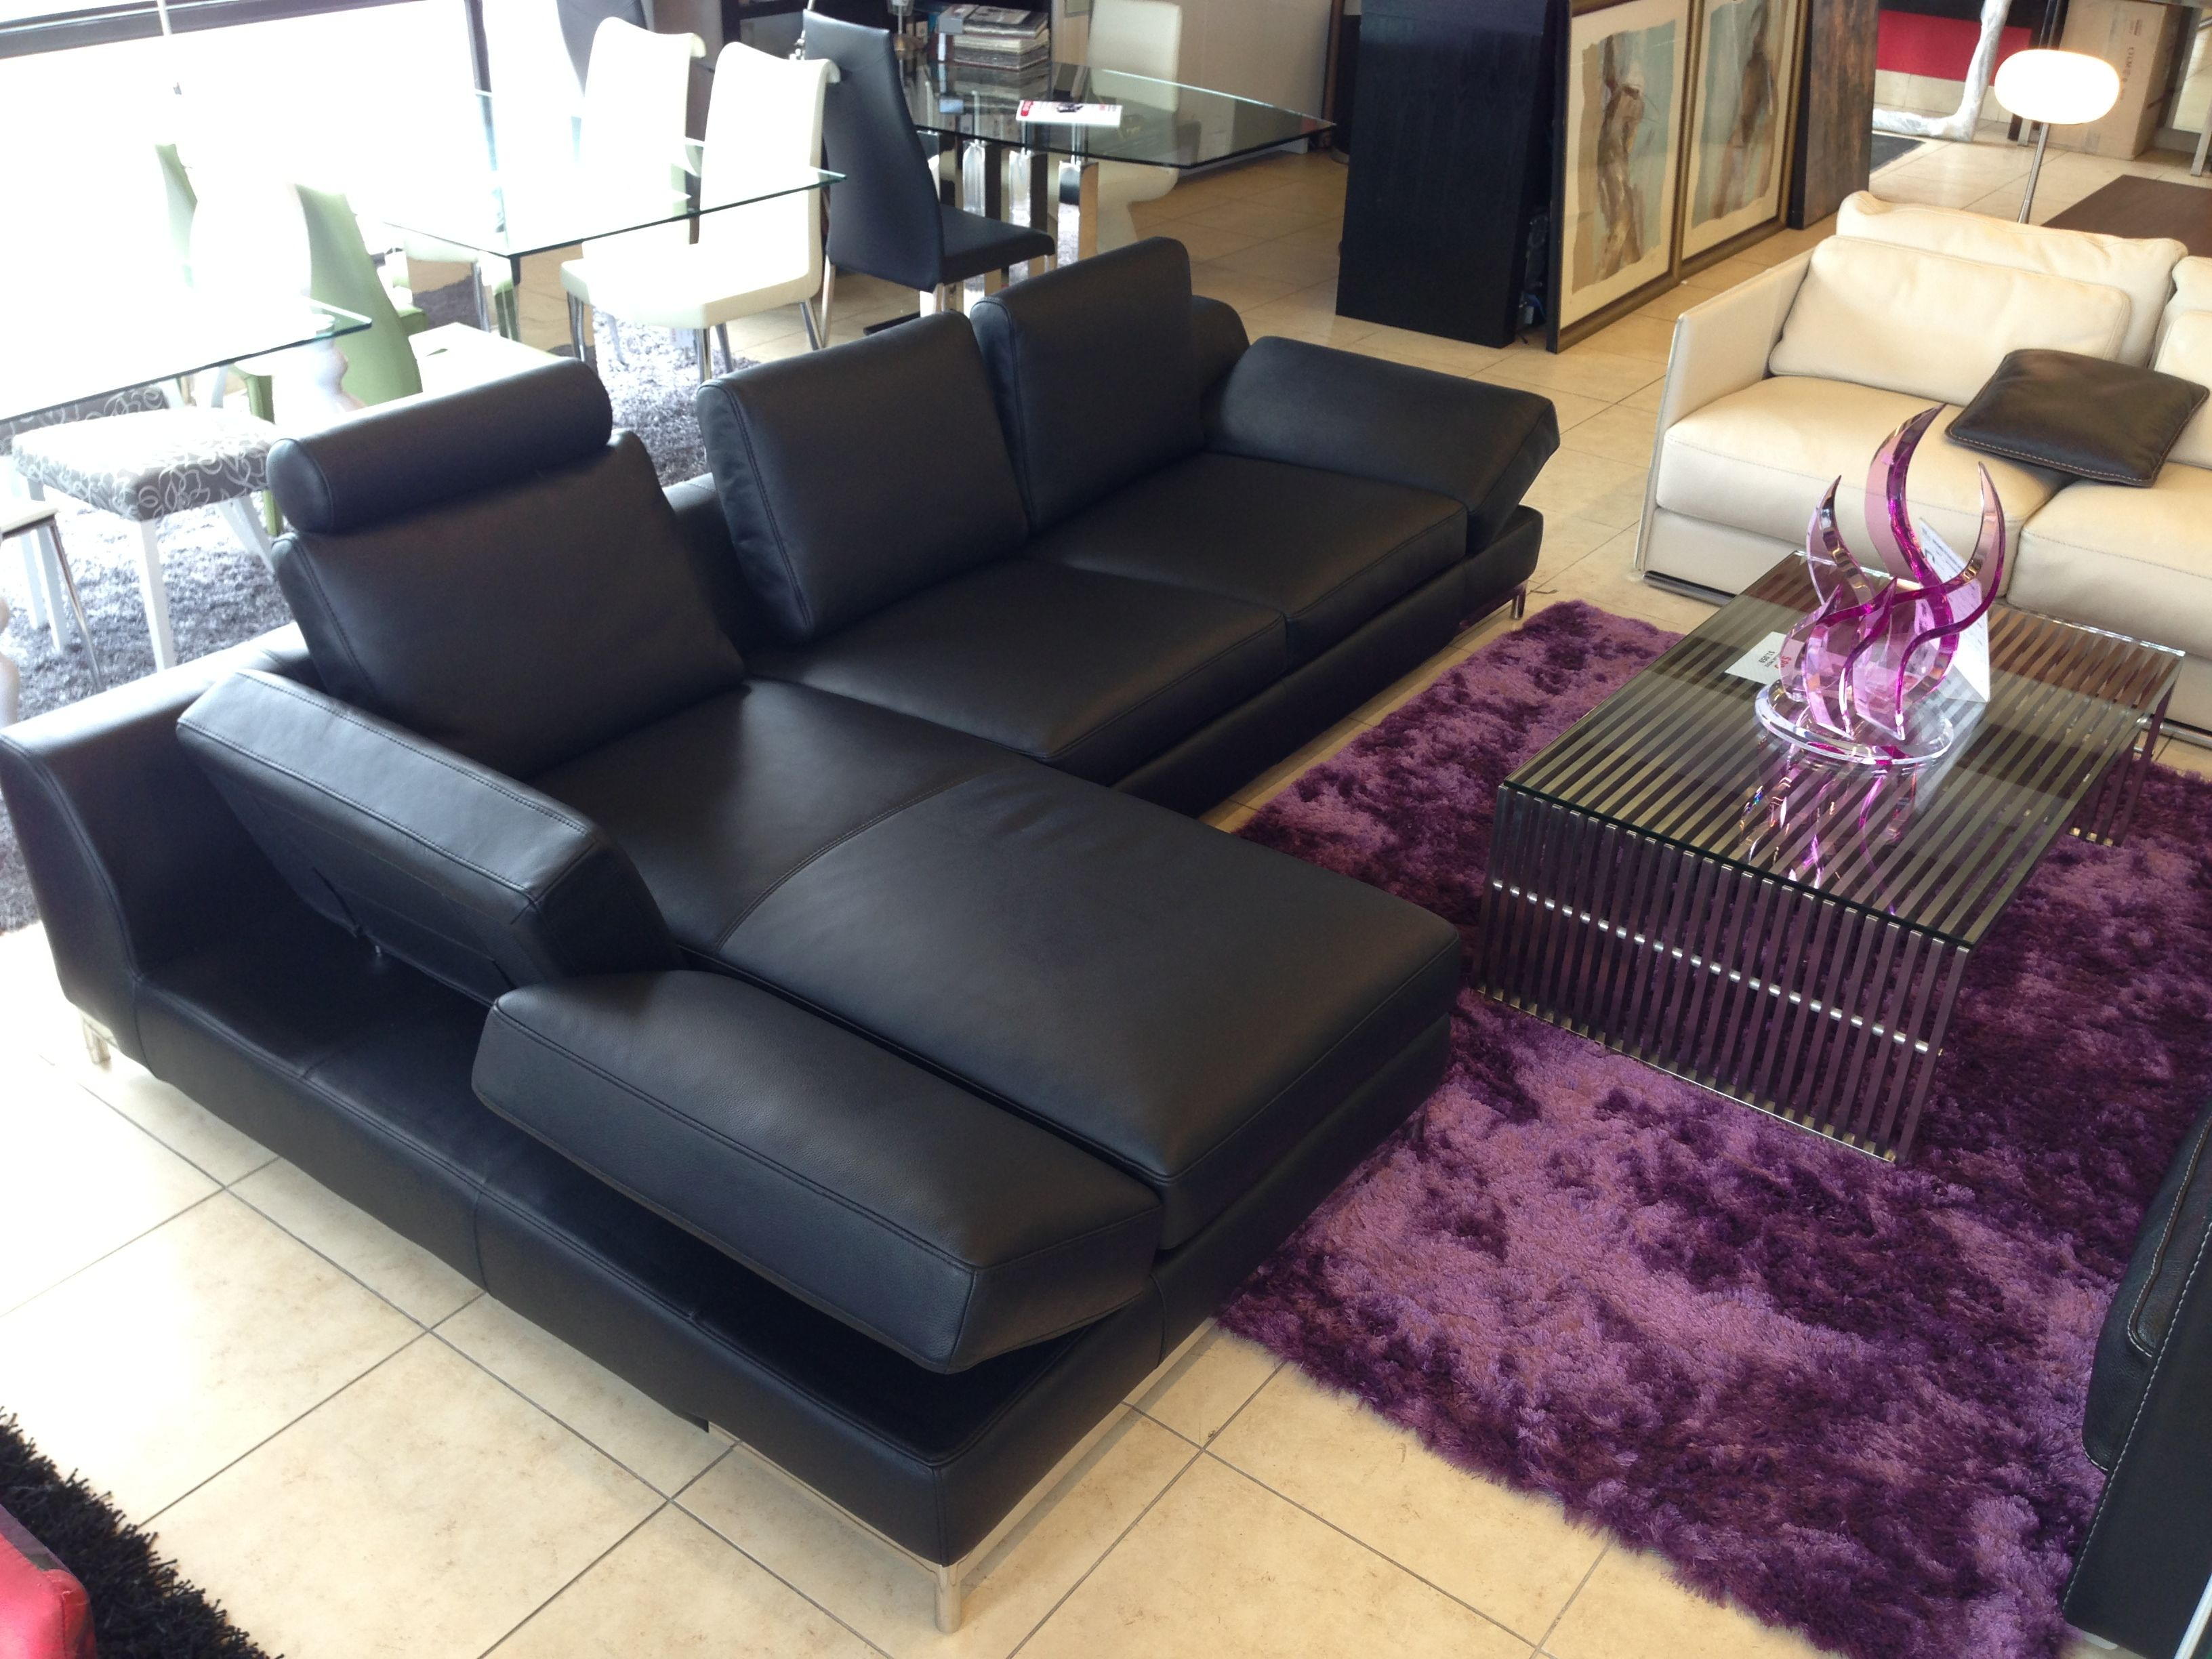 New Leather Sectional Sofa Furniture Toronto 700 Kipling Ave Etobicoke Ontario Sofa Sectional Sofa Furniture